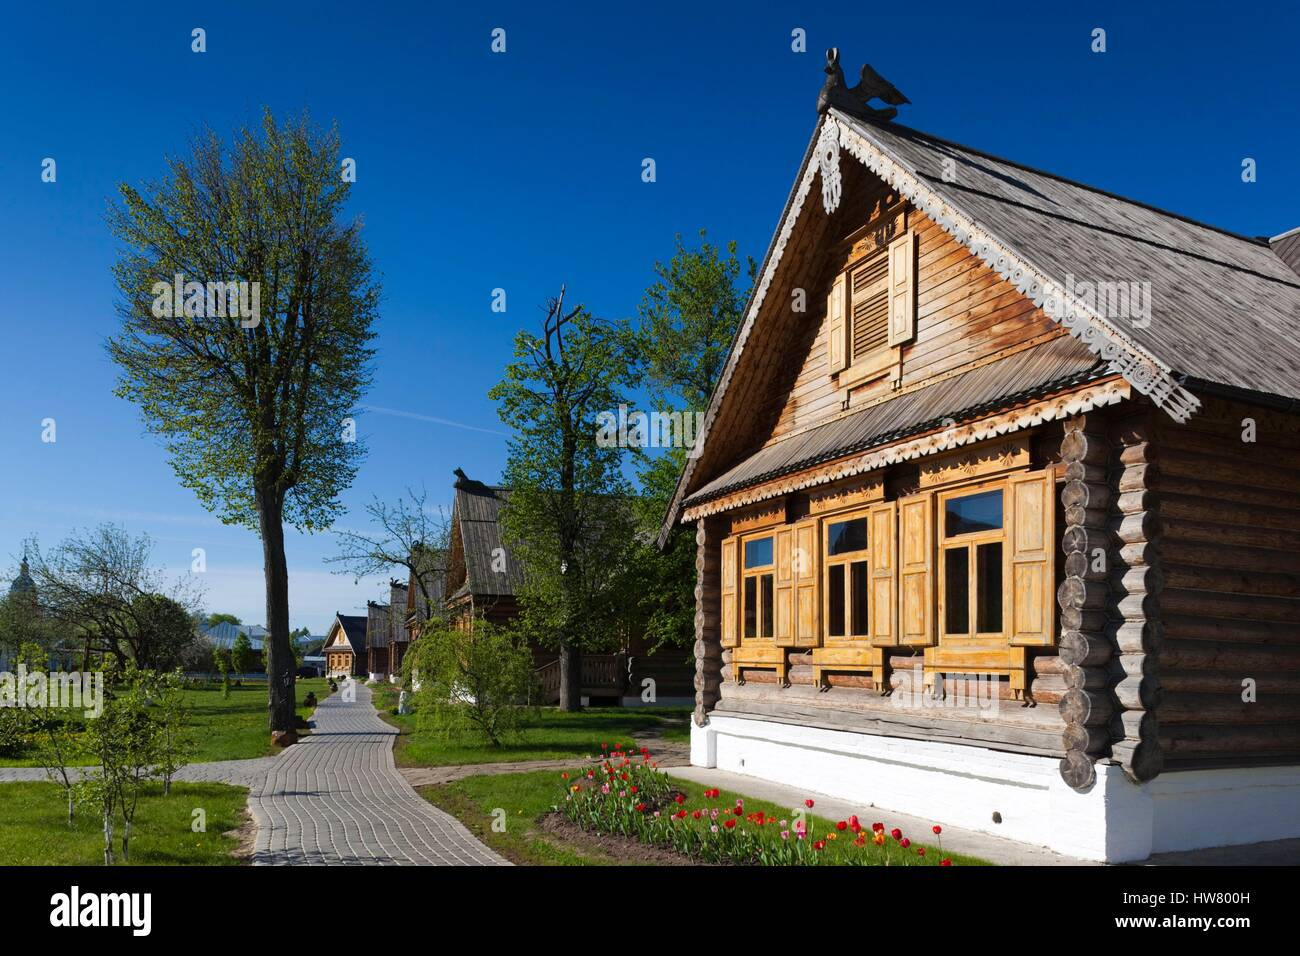 Russia, Vladimir Oblast, Golden Ring, Suzdal, Pushkarskaya Sloboda resort complex, traditional Russian izba cabins - Stock Image